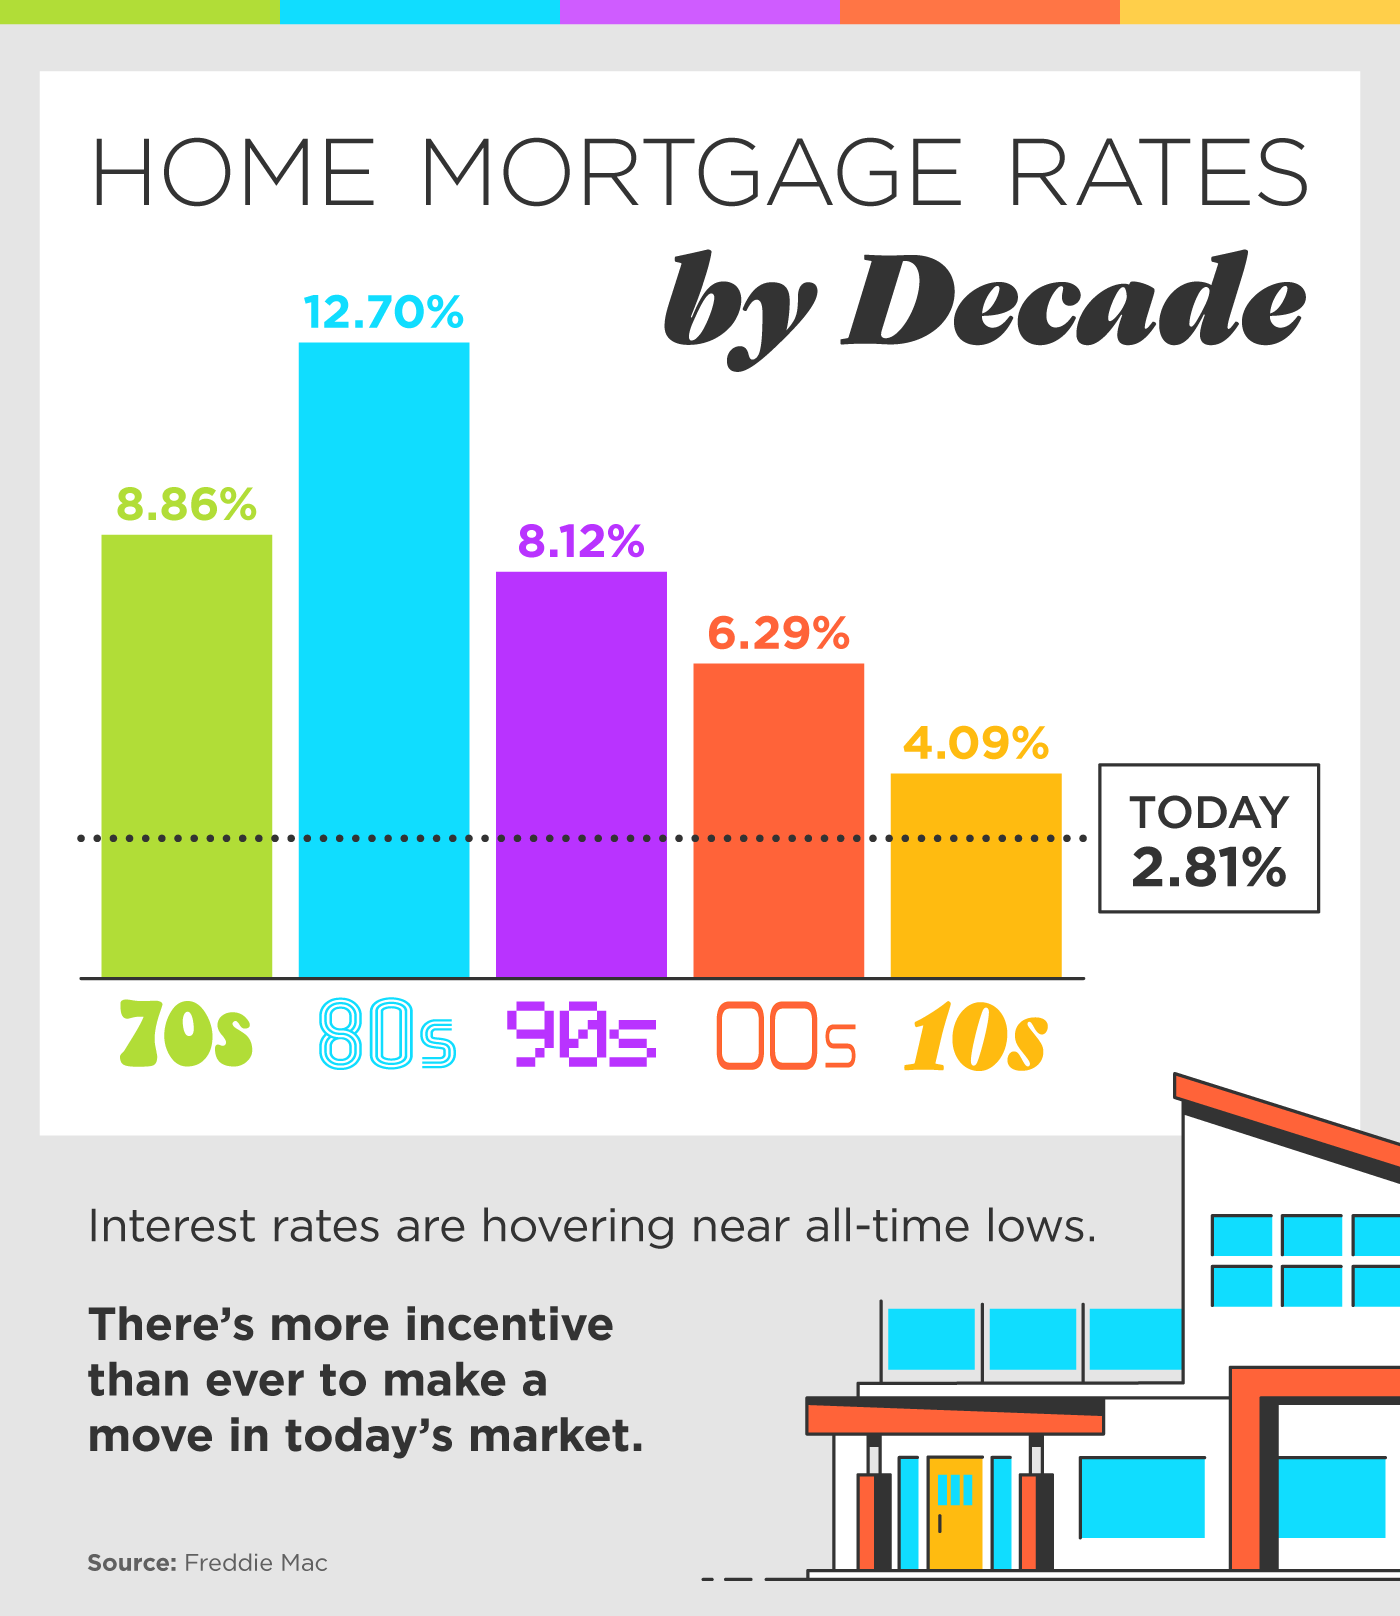 Home Mortgage Rates by Decade [INFOGRAPHIC] | Bridge Builders